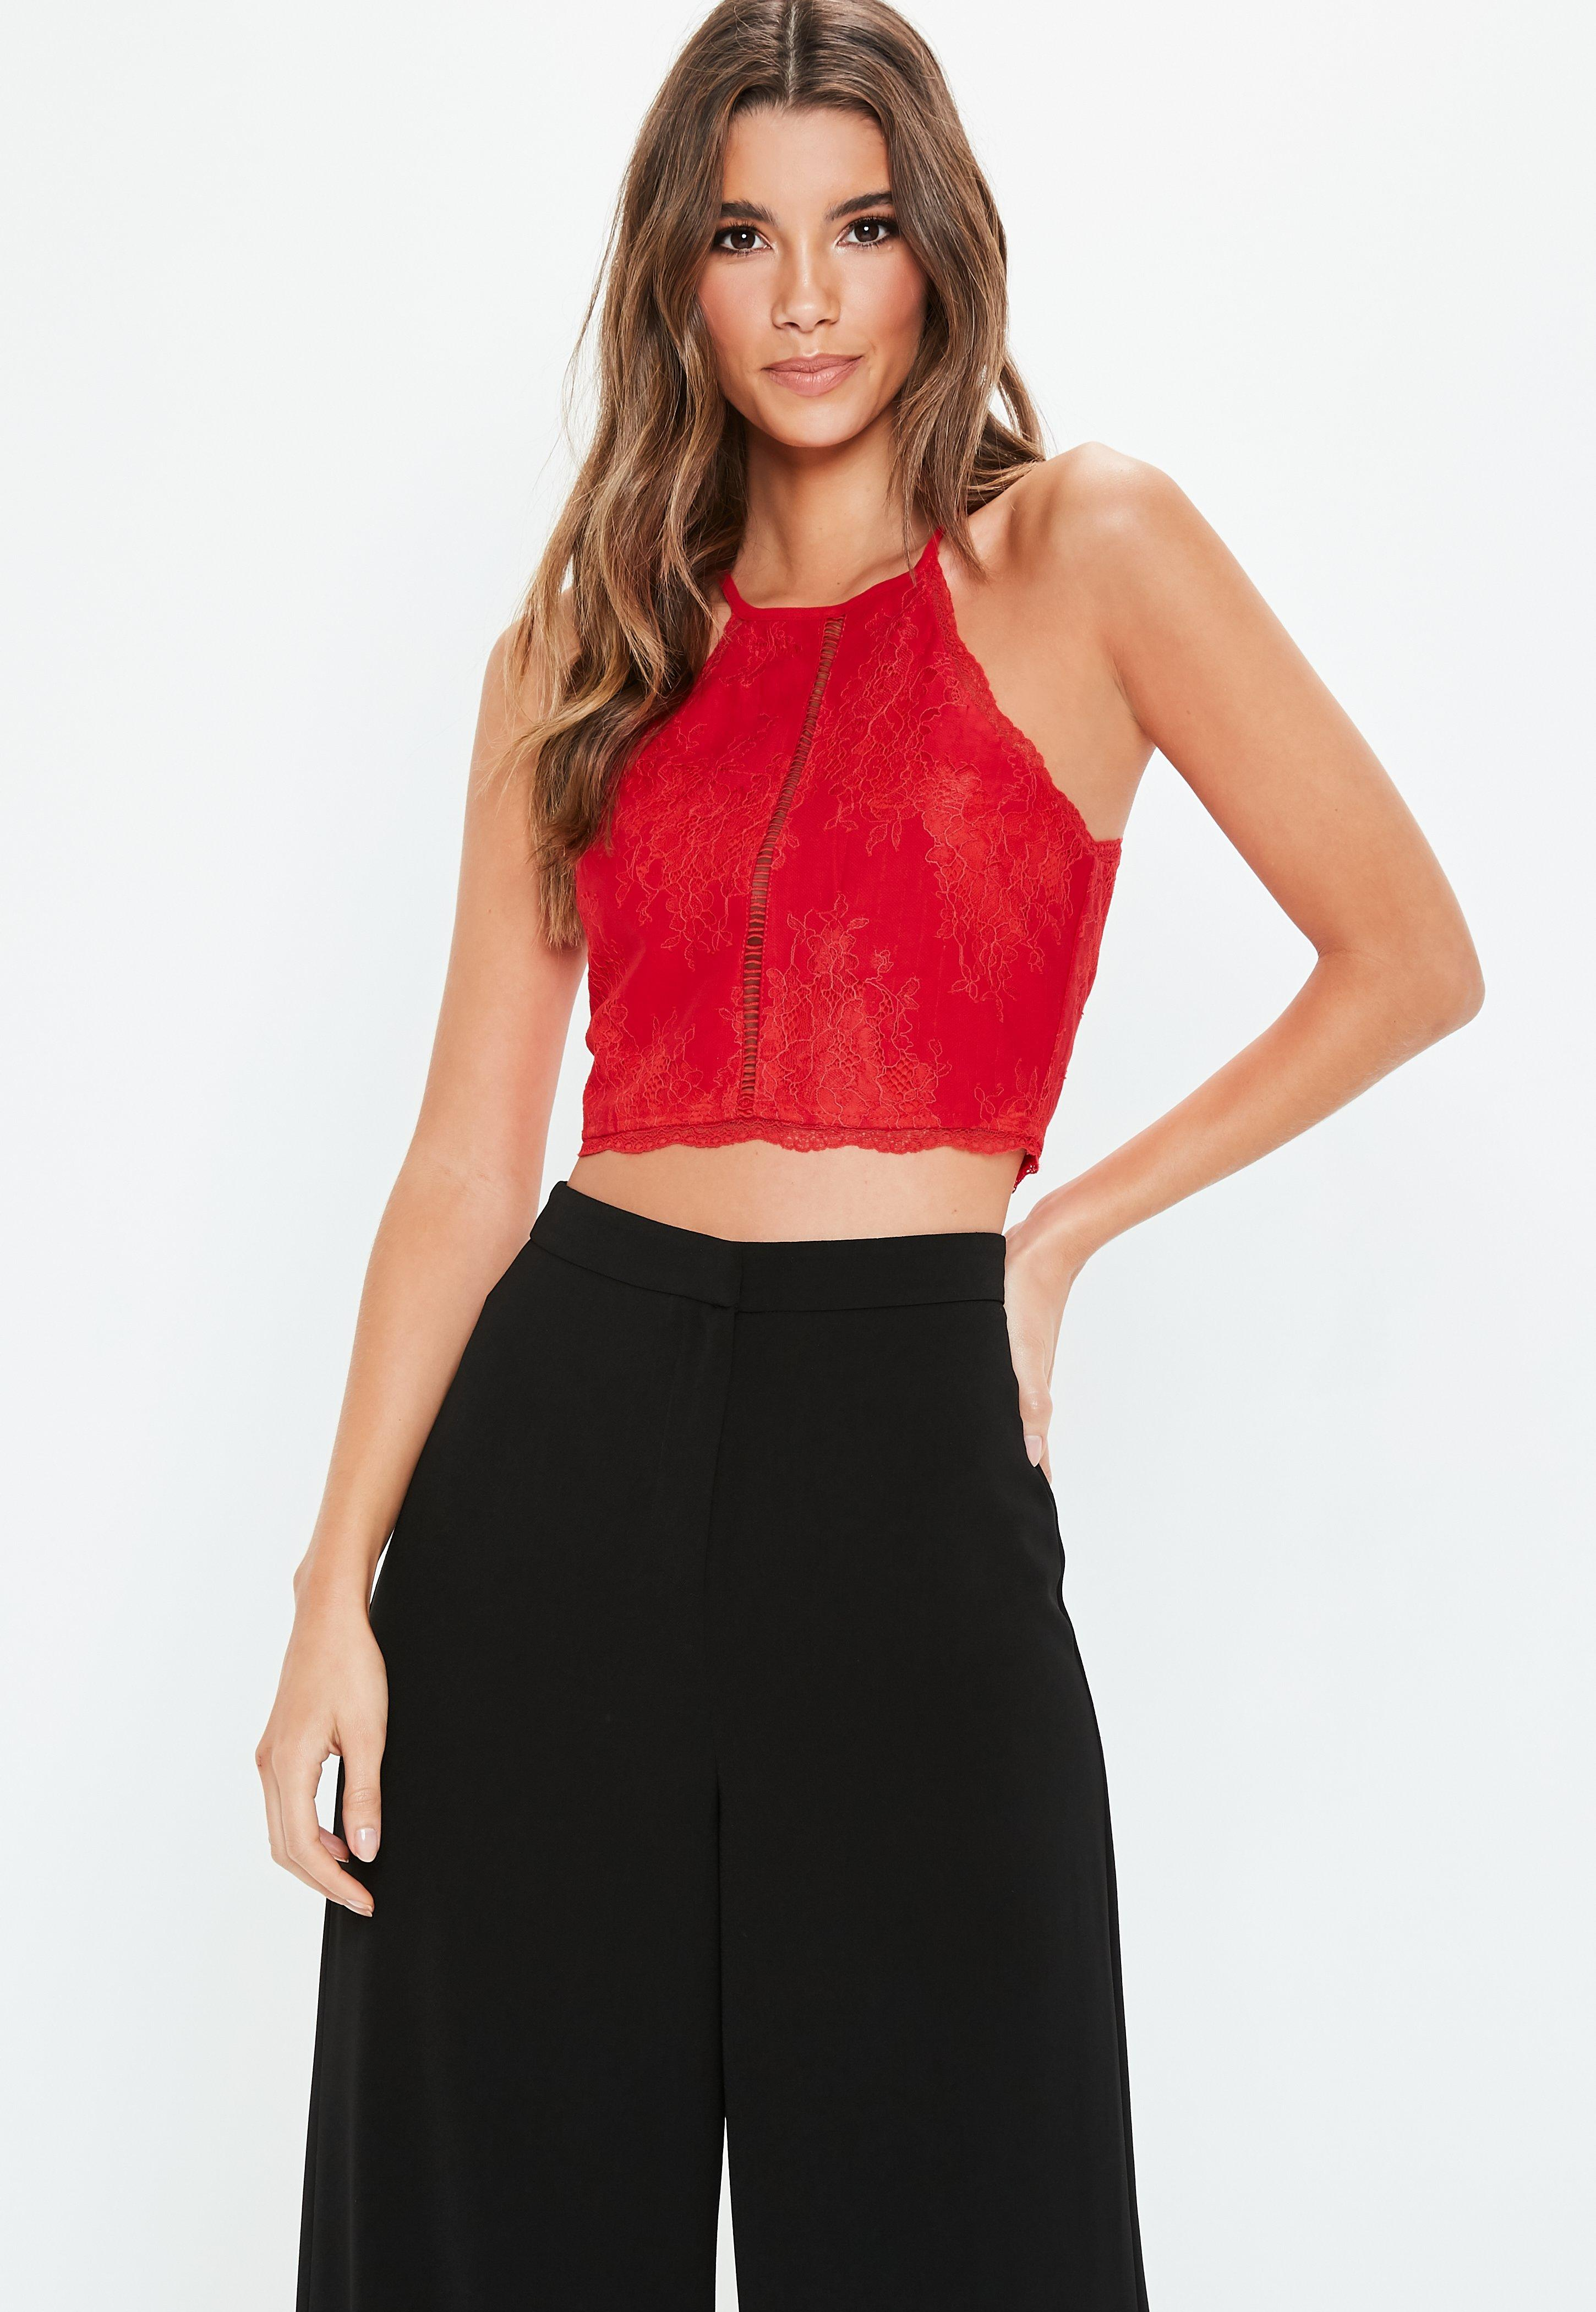 b72d597f22 Red Lace Insert Halter Top